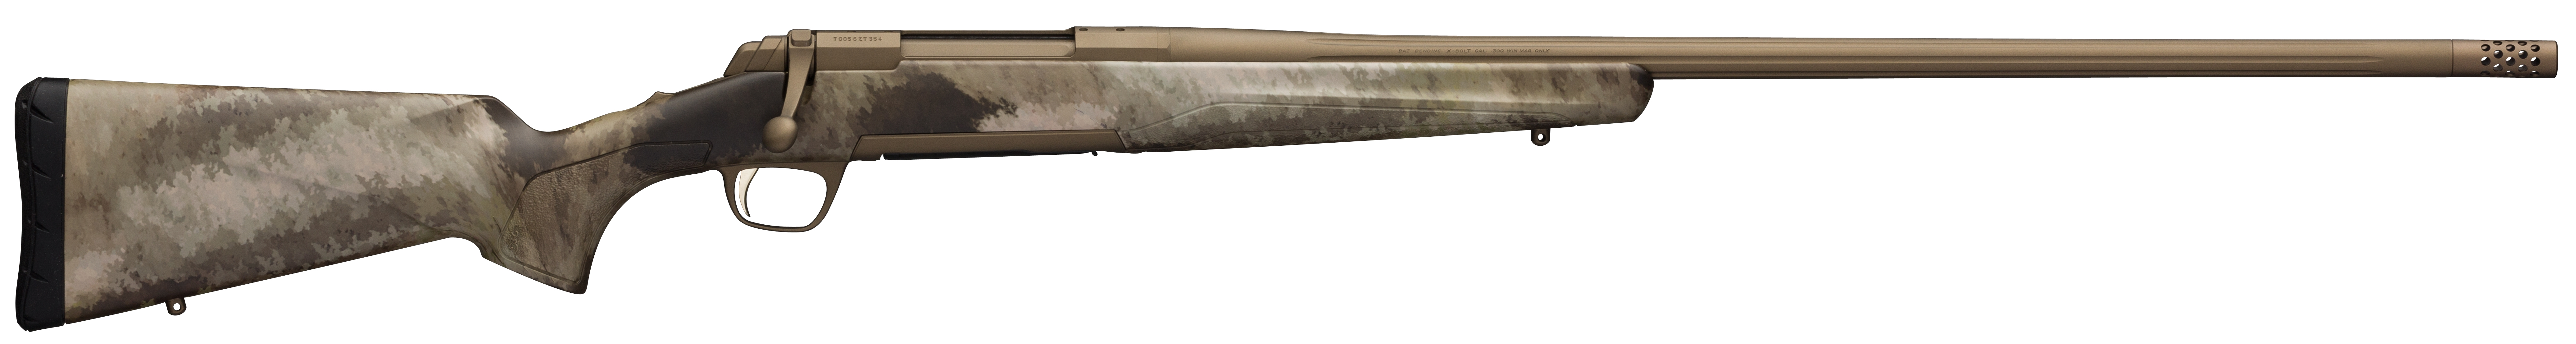 best obscure long range rifles you probably don t own but should